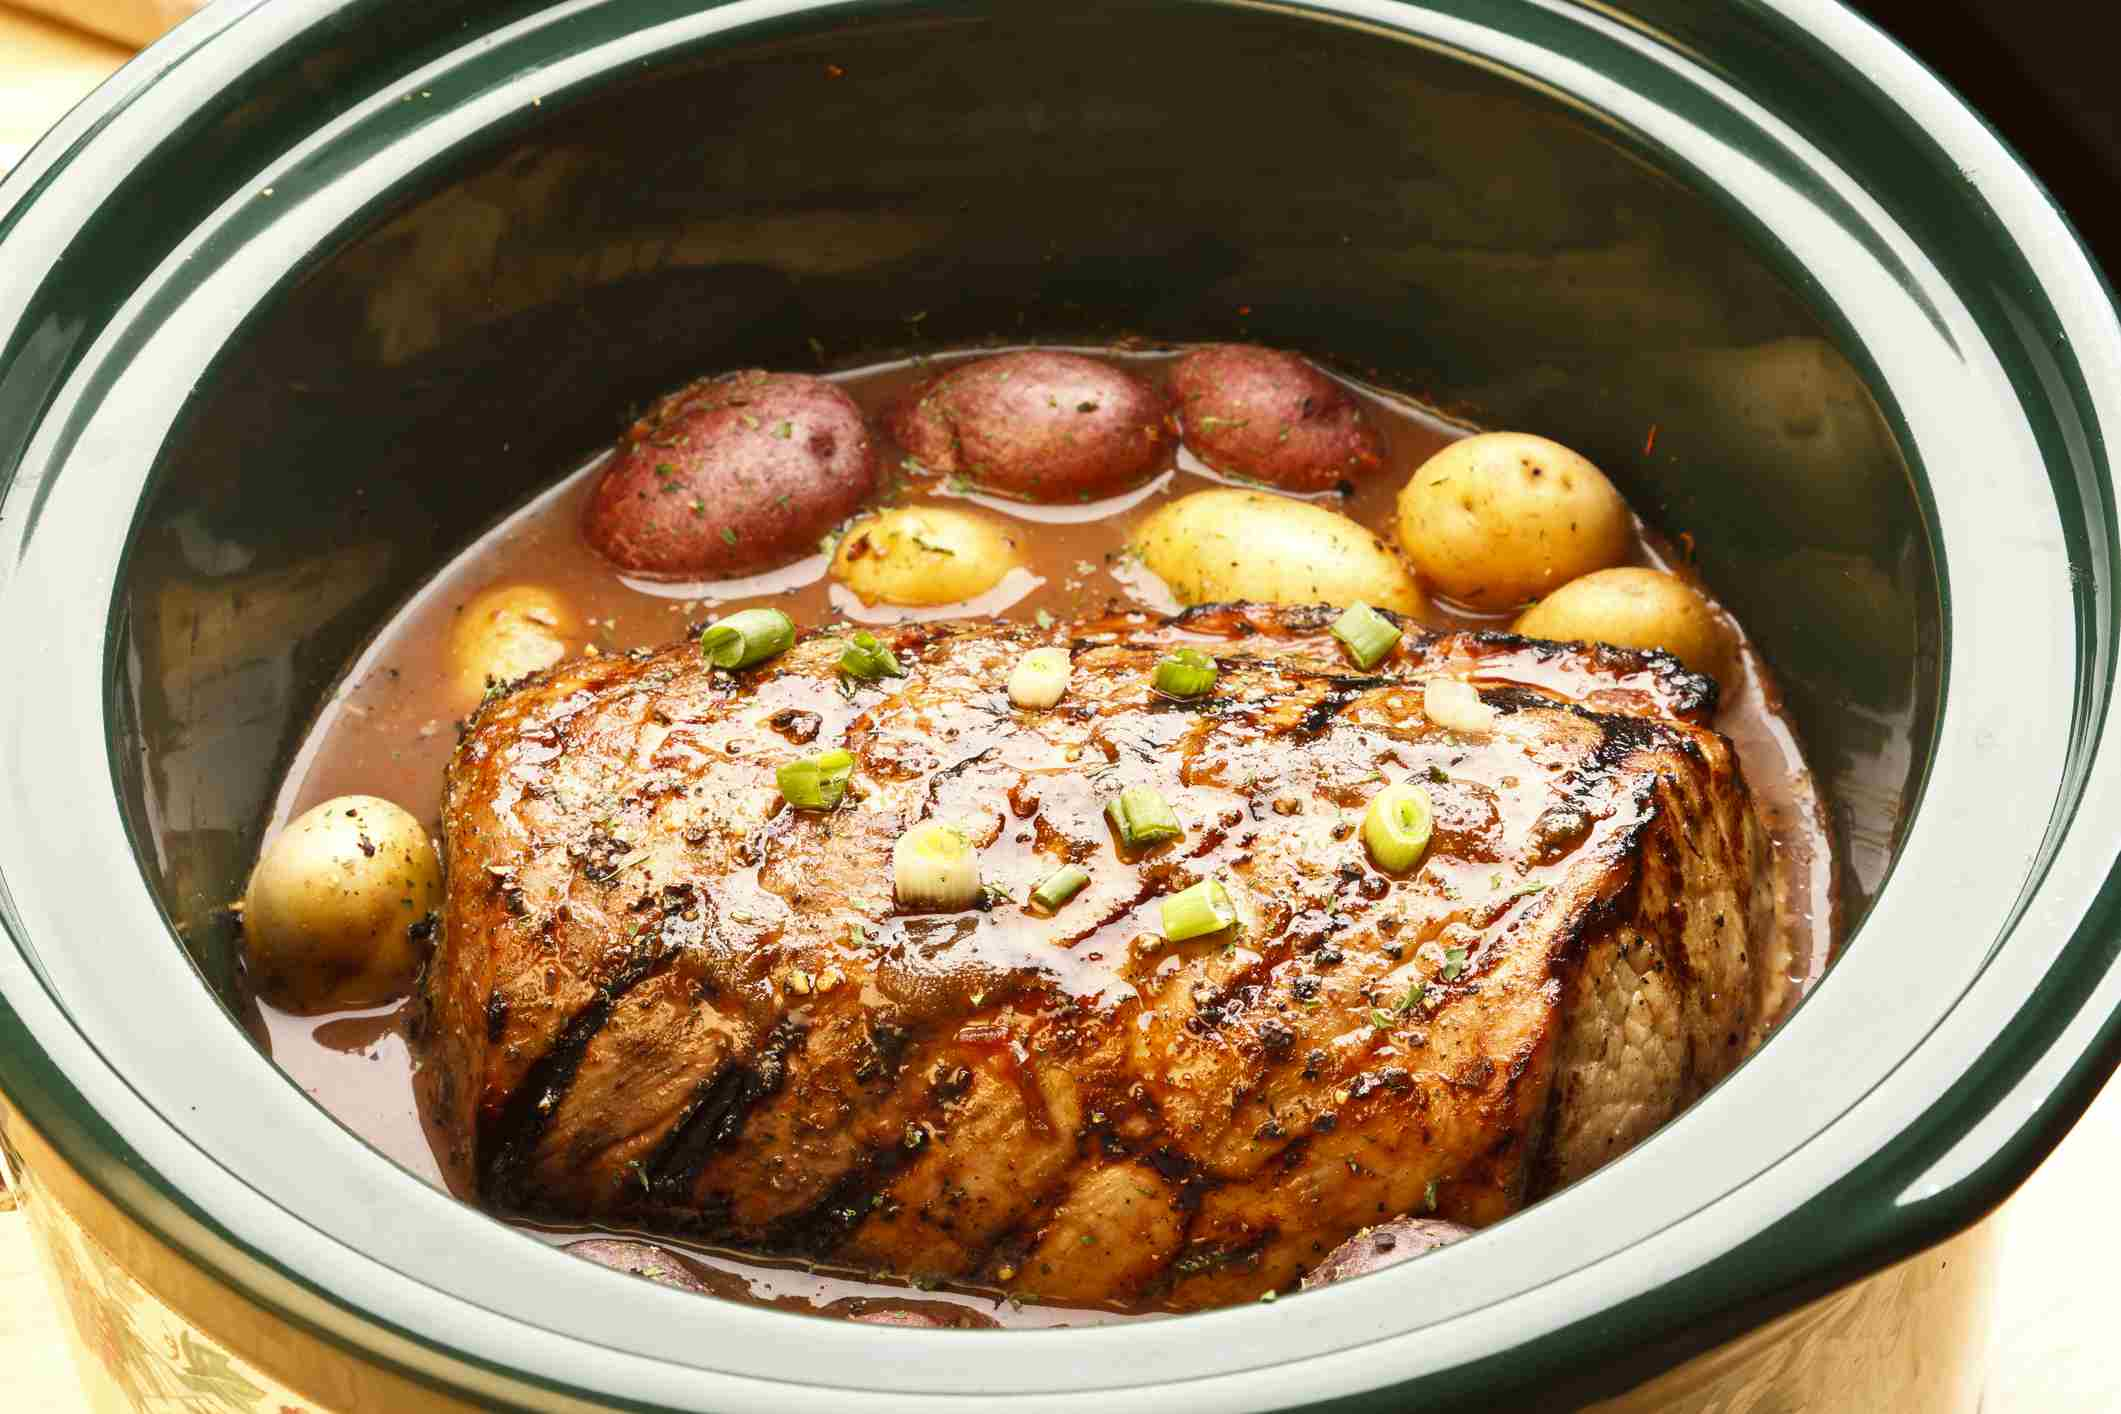 Slow Cooker filled with roast and potatoes